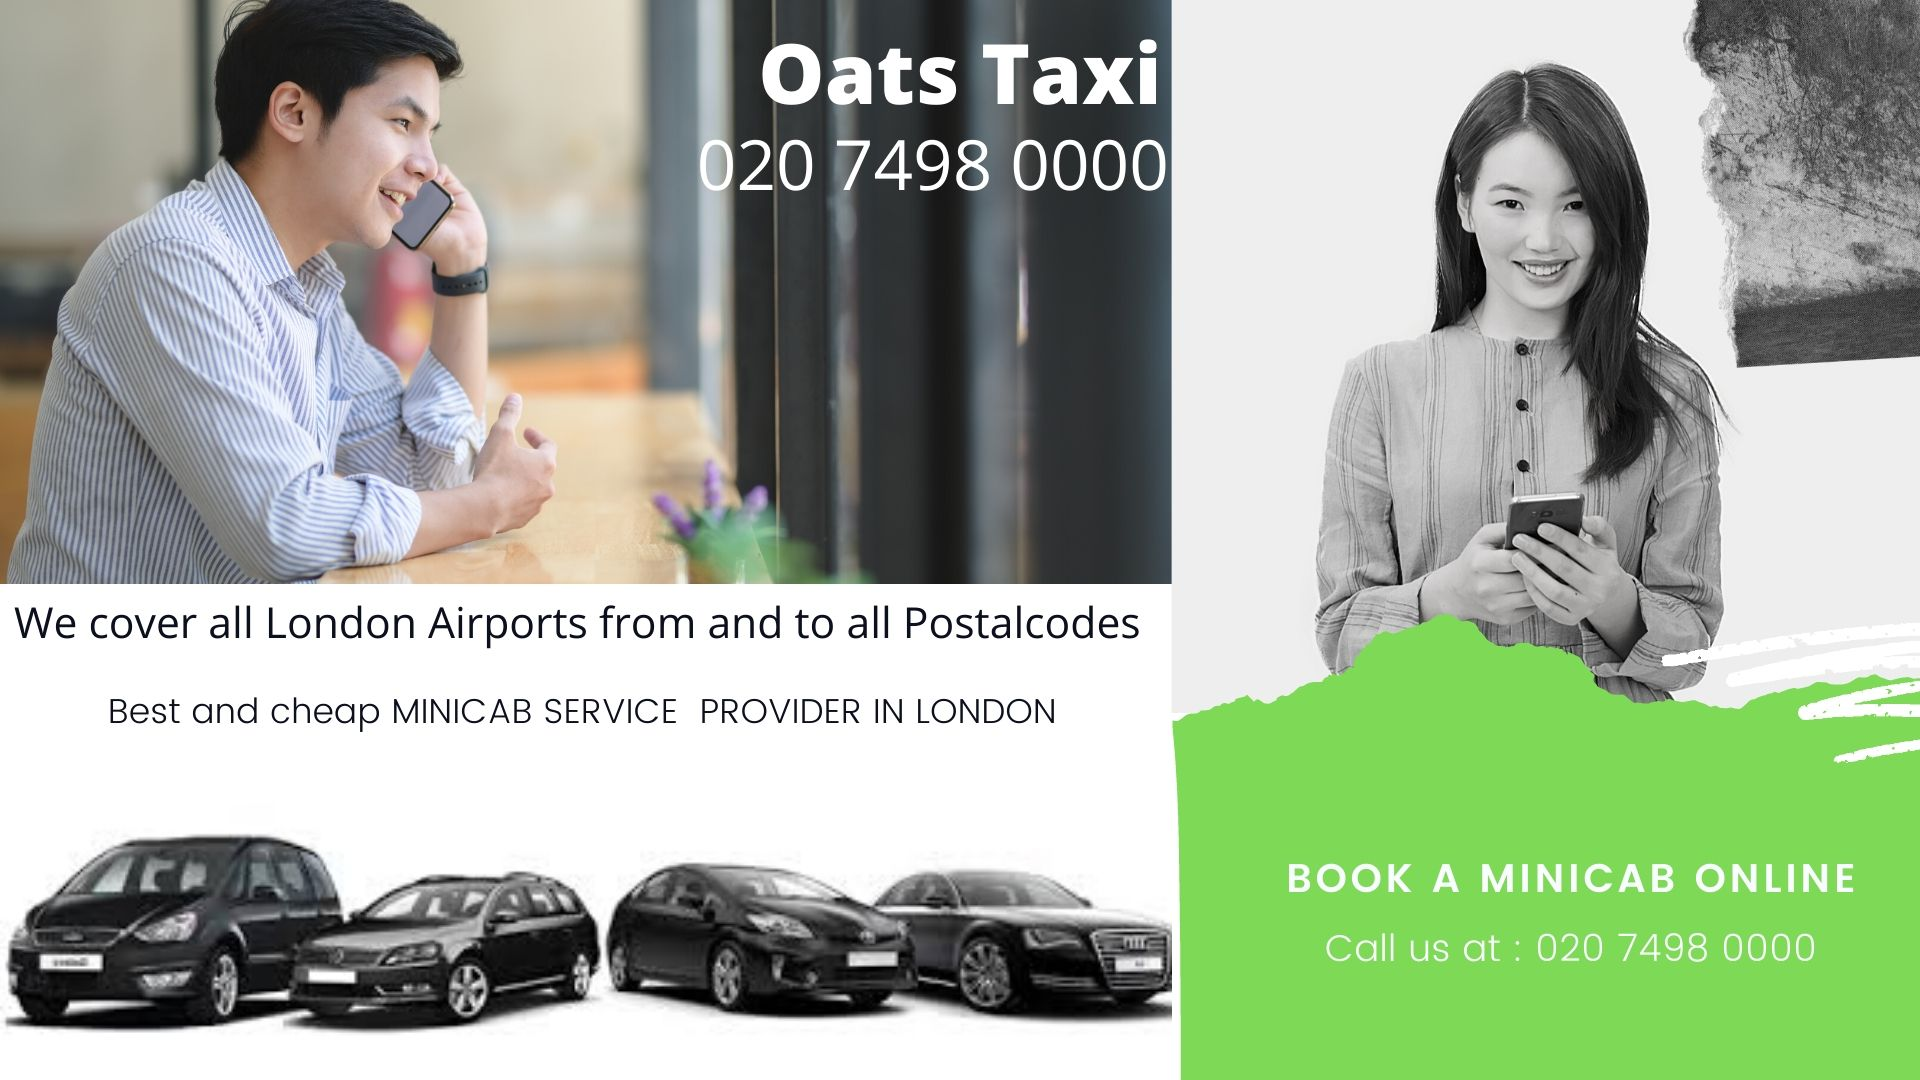 Minicab Office Near YORK ROAD, Battersea SW11, Minicab From Battersea SW11 To Gatwick Airport